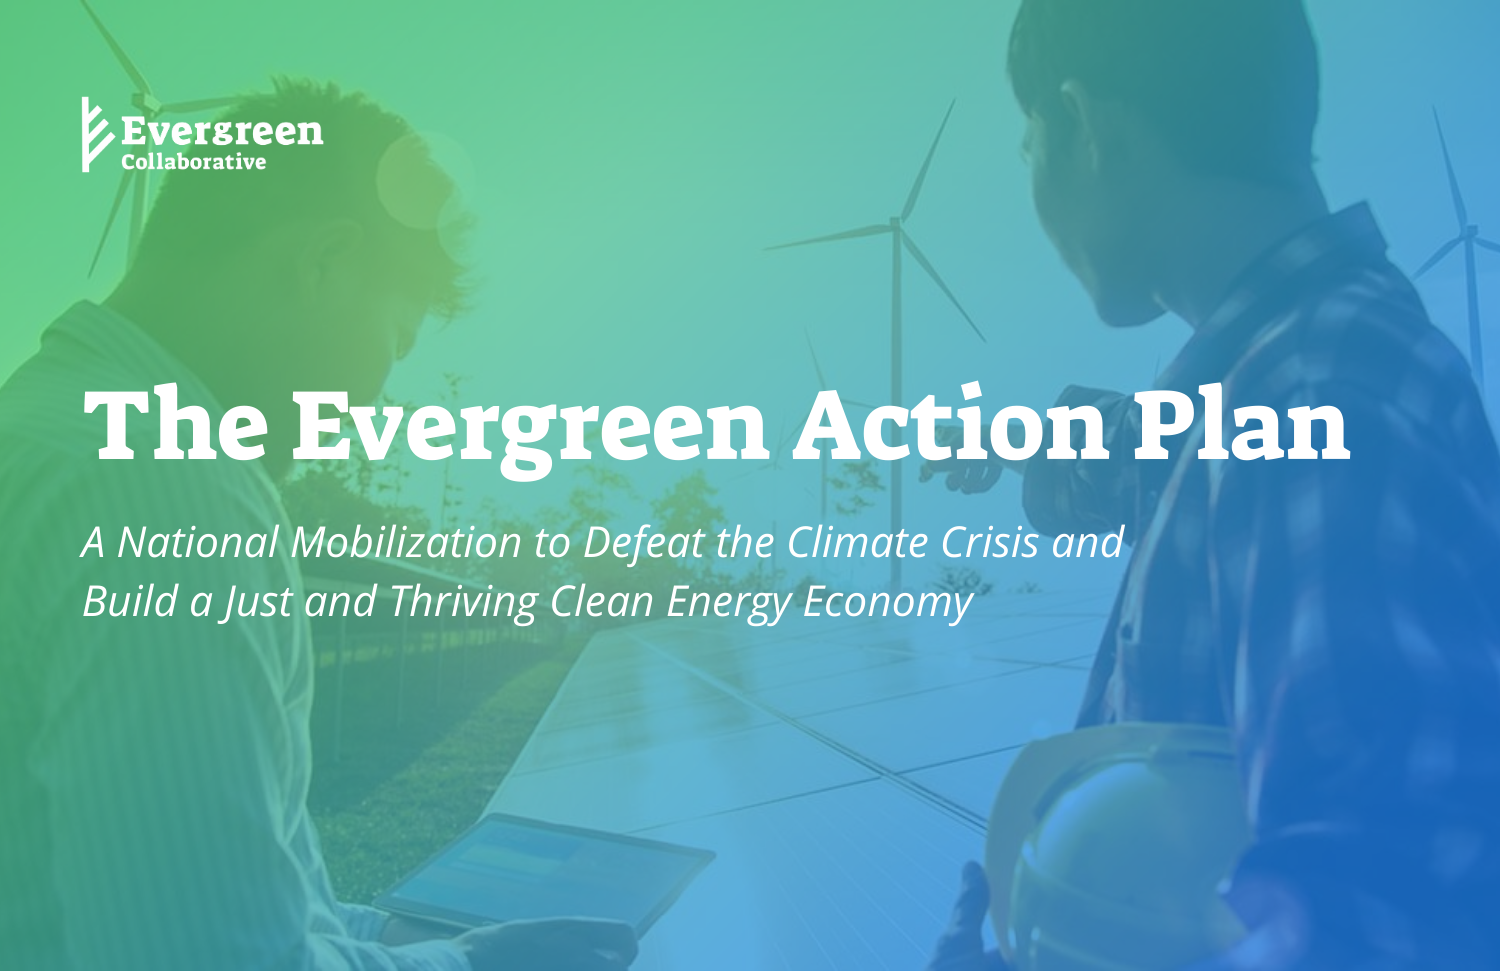 photo of The Evergreen Action Plan